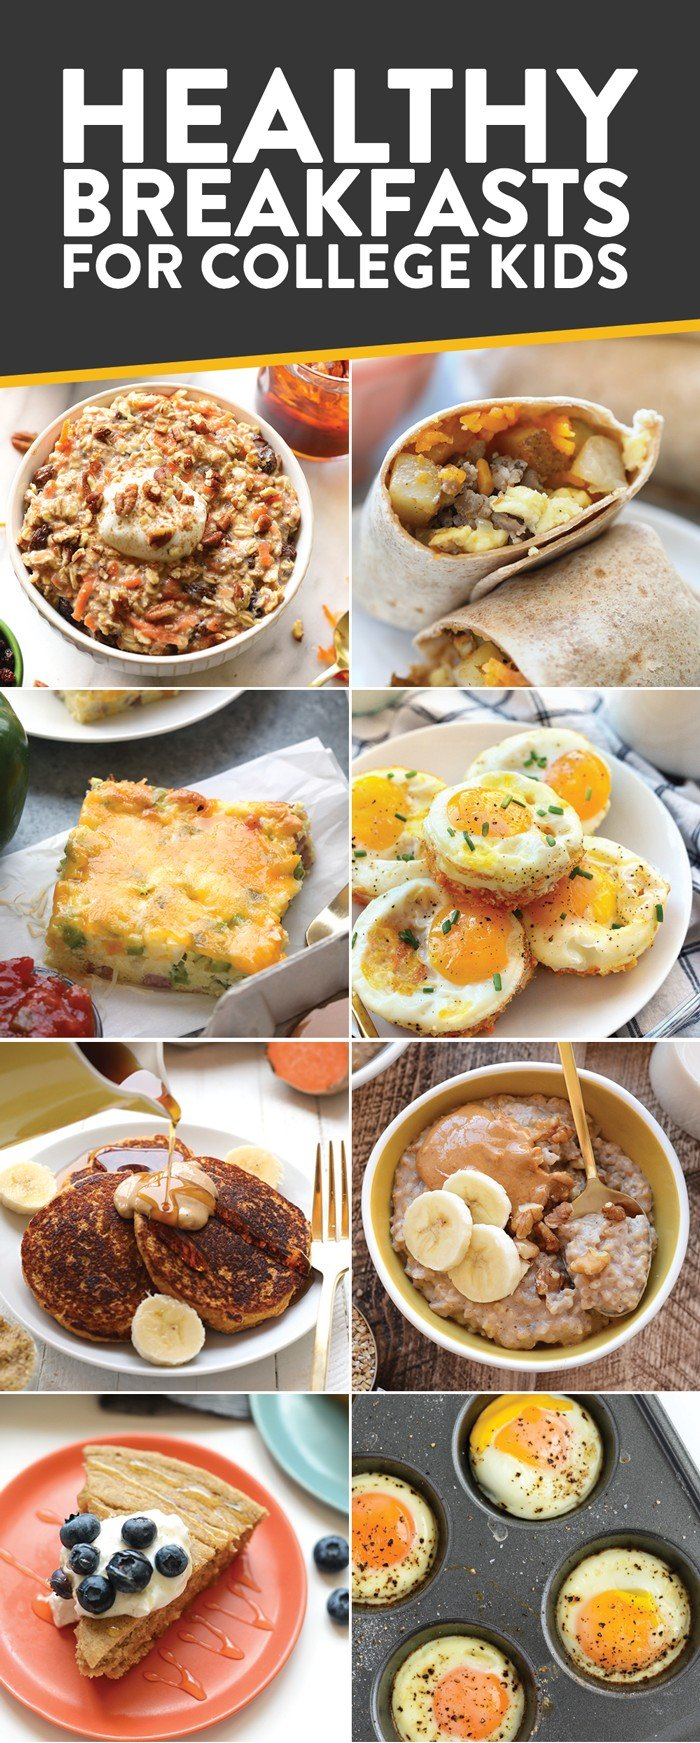 Photo collage of healthy breakfast recipes